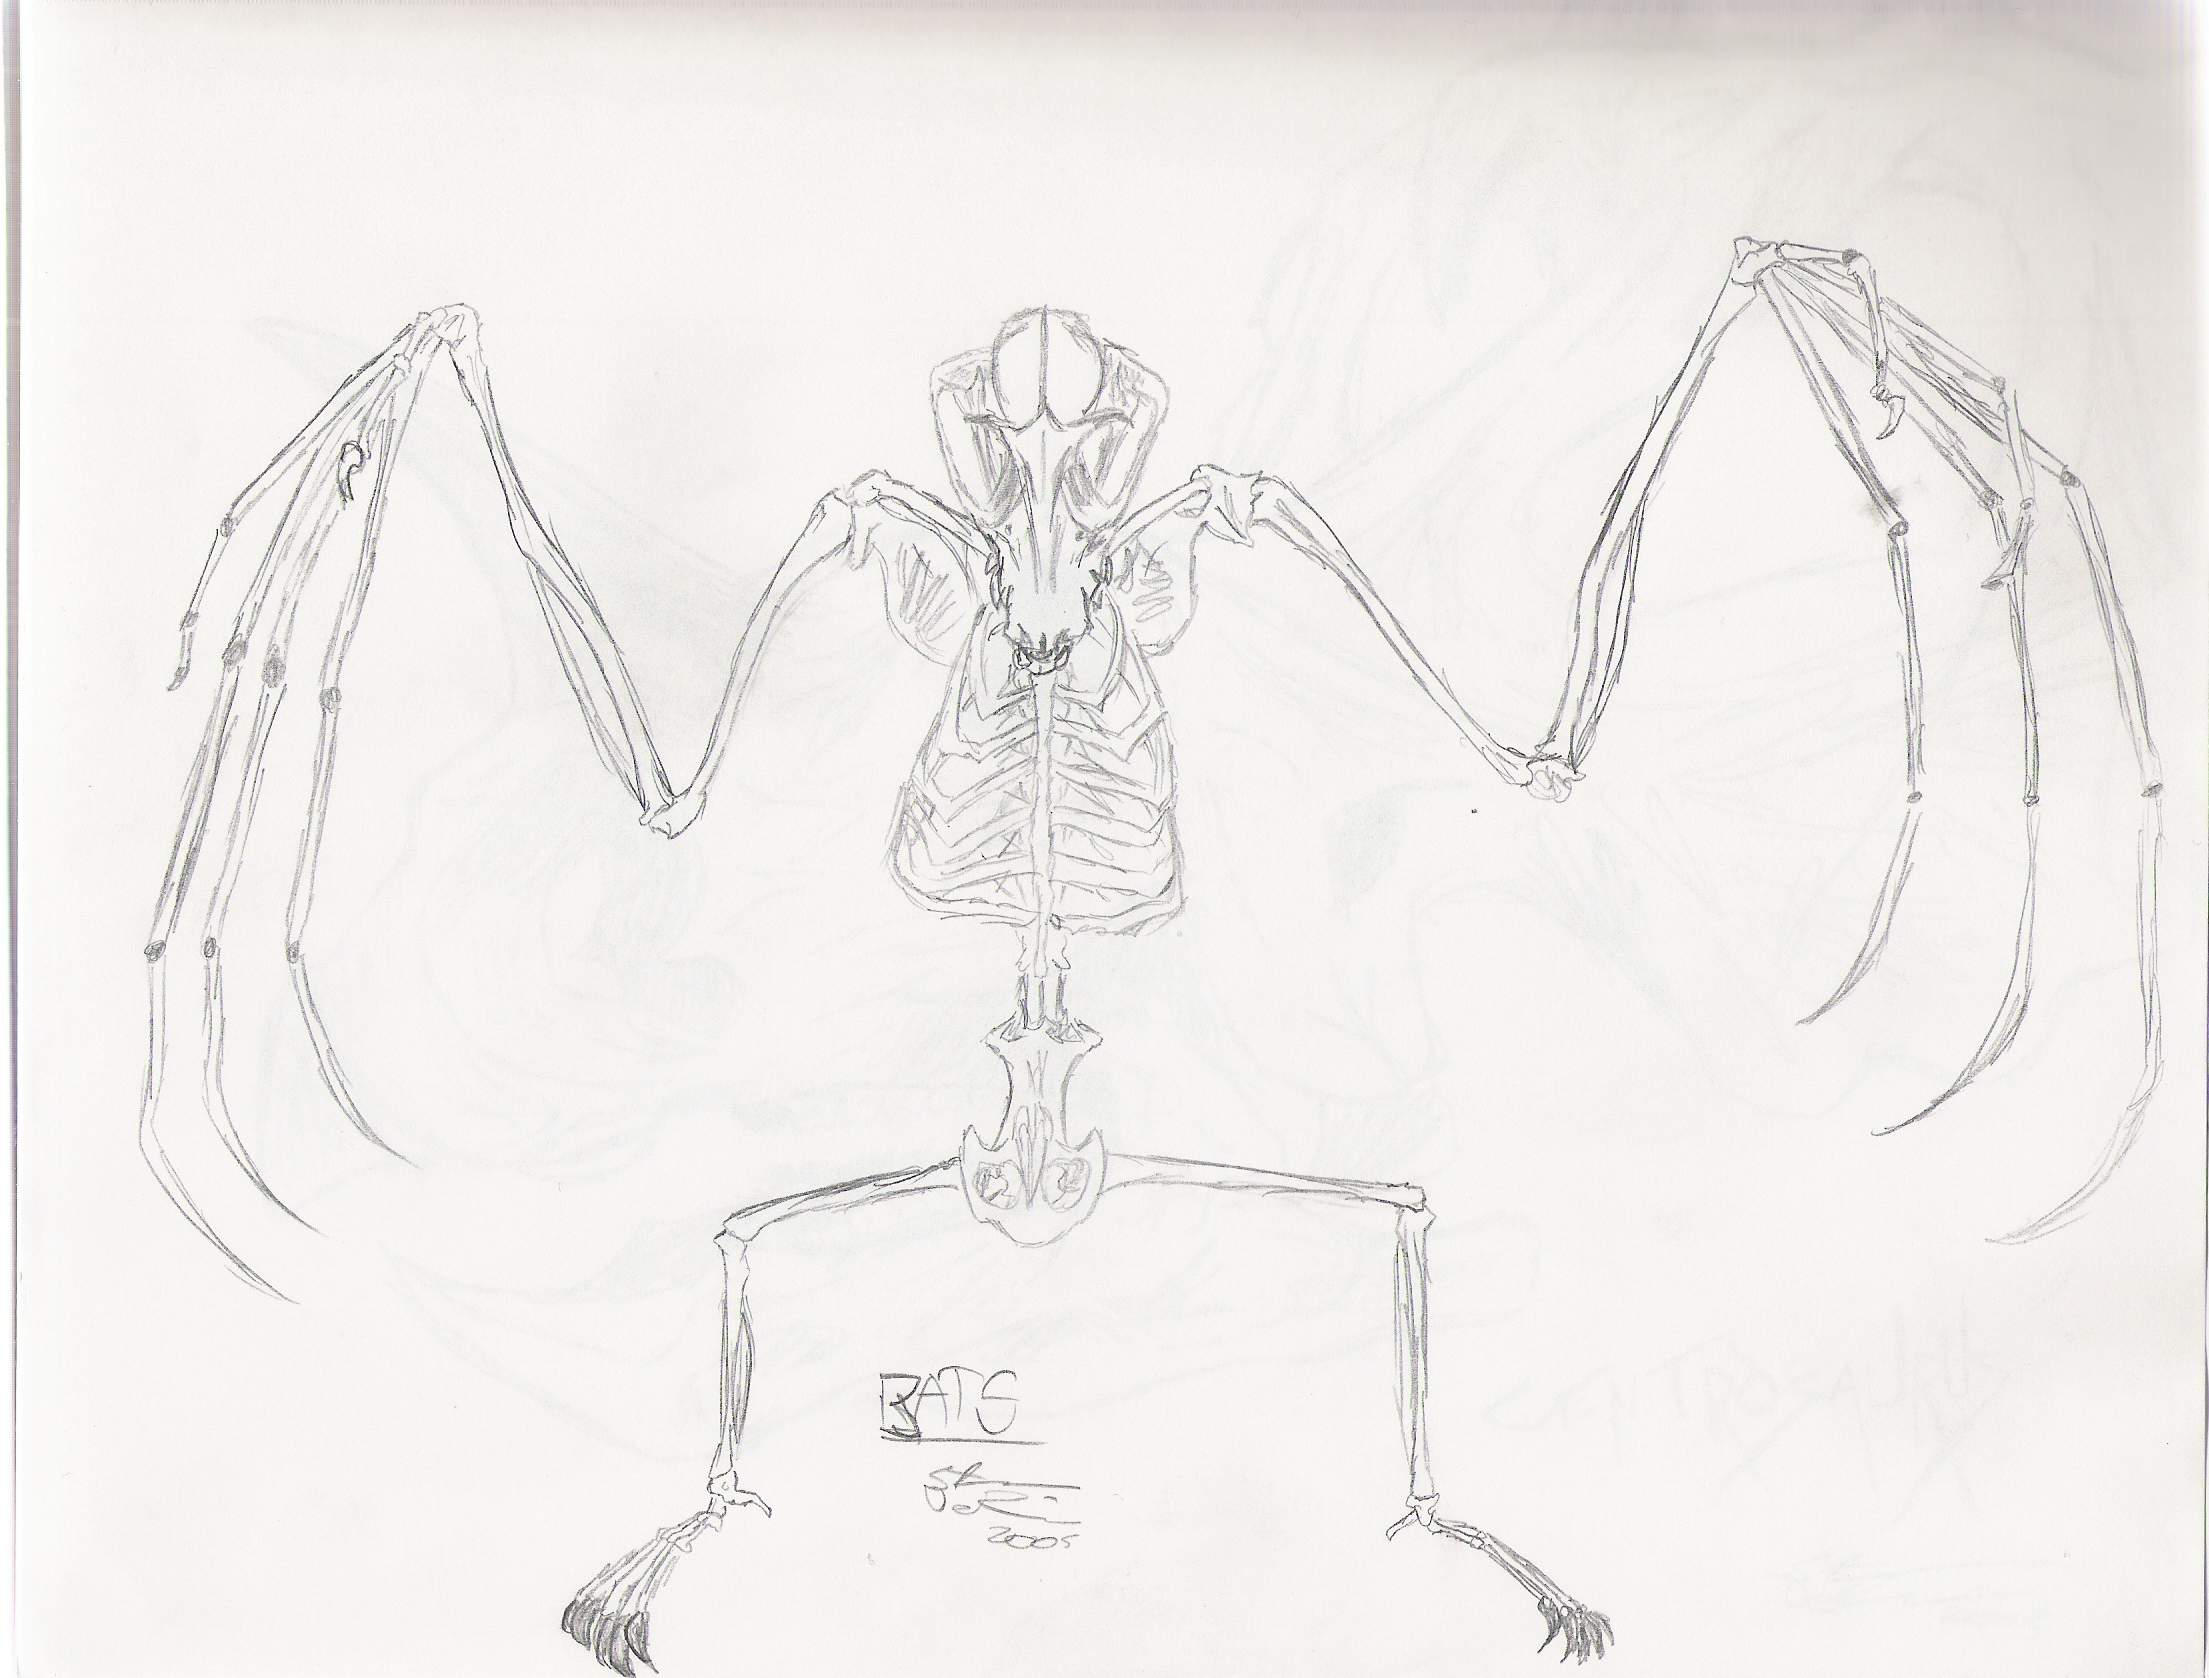 Bat skeleton drawing - photo#16